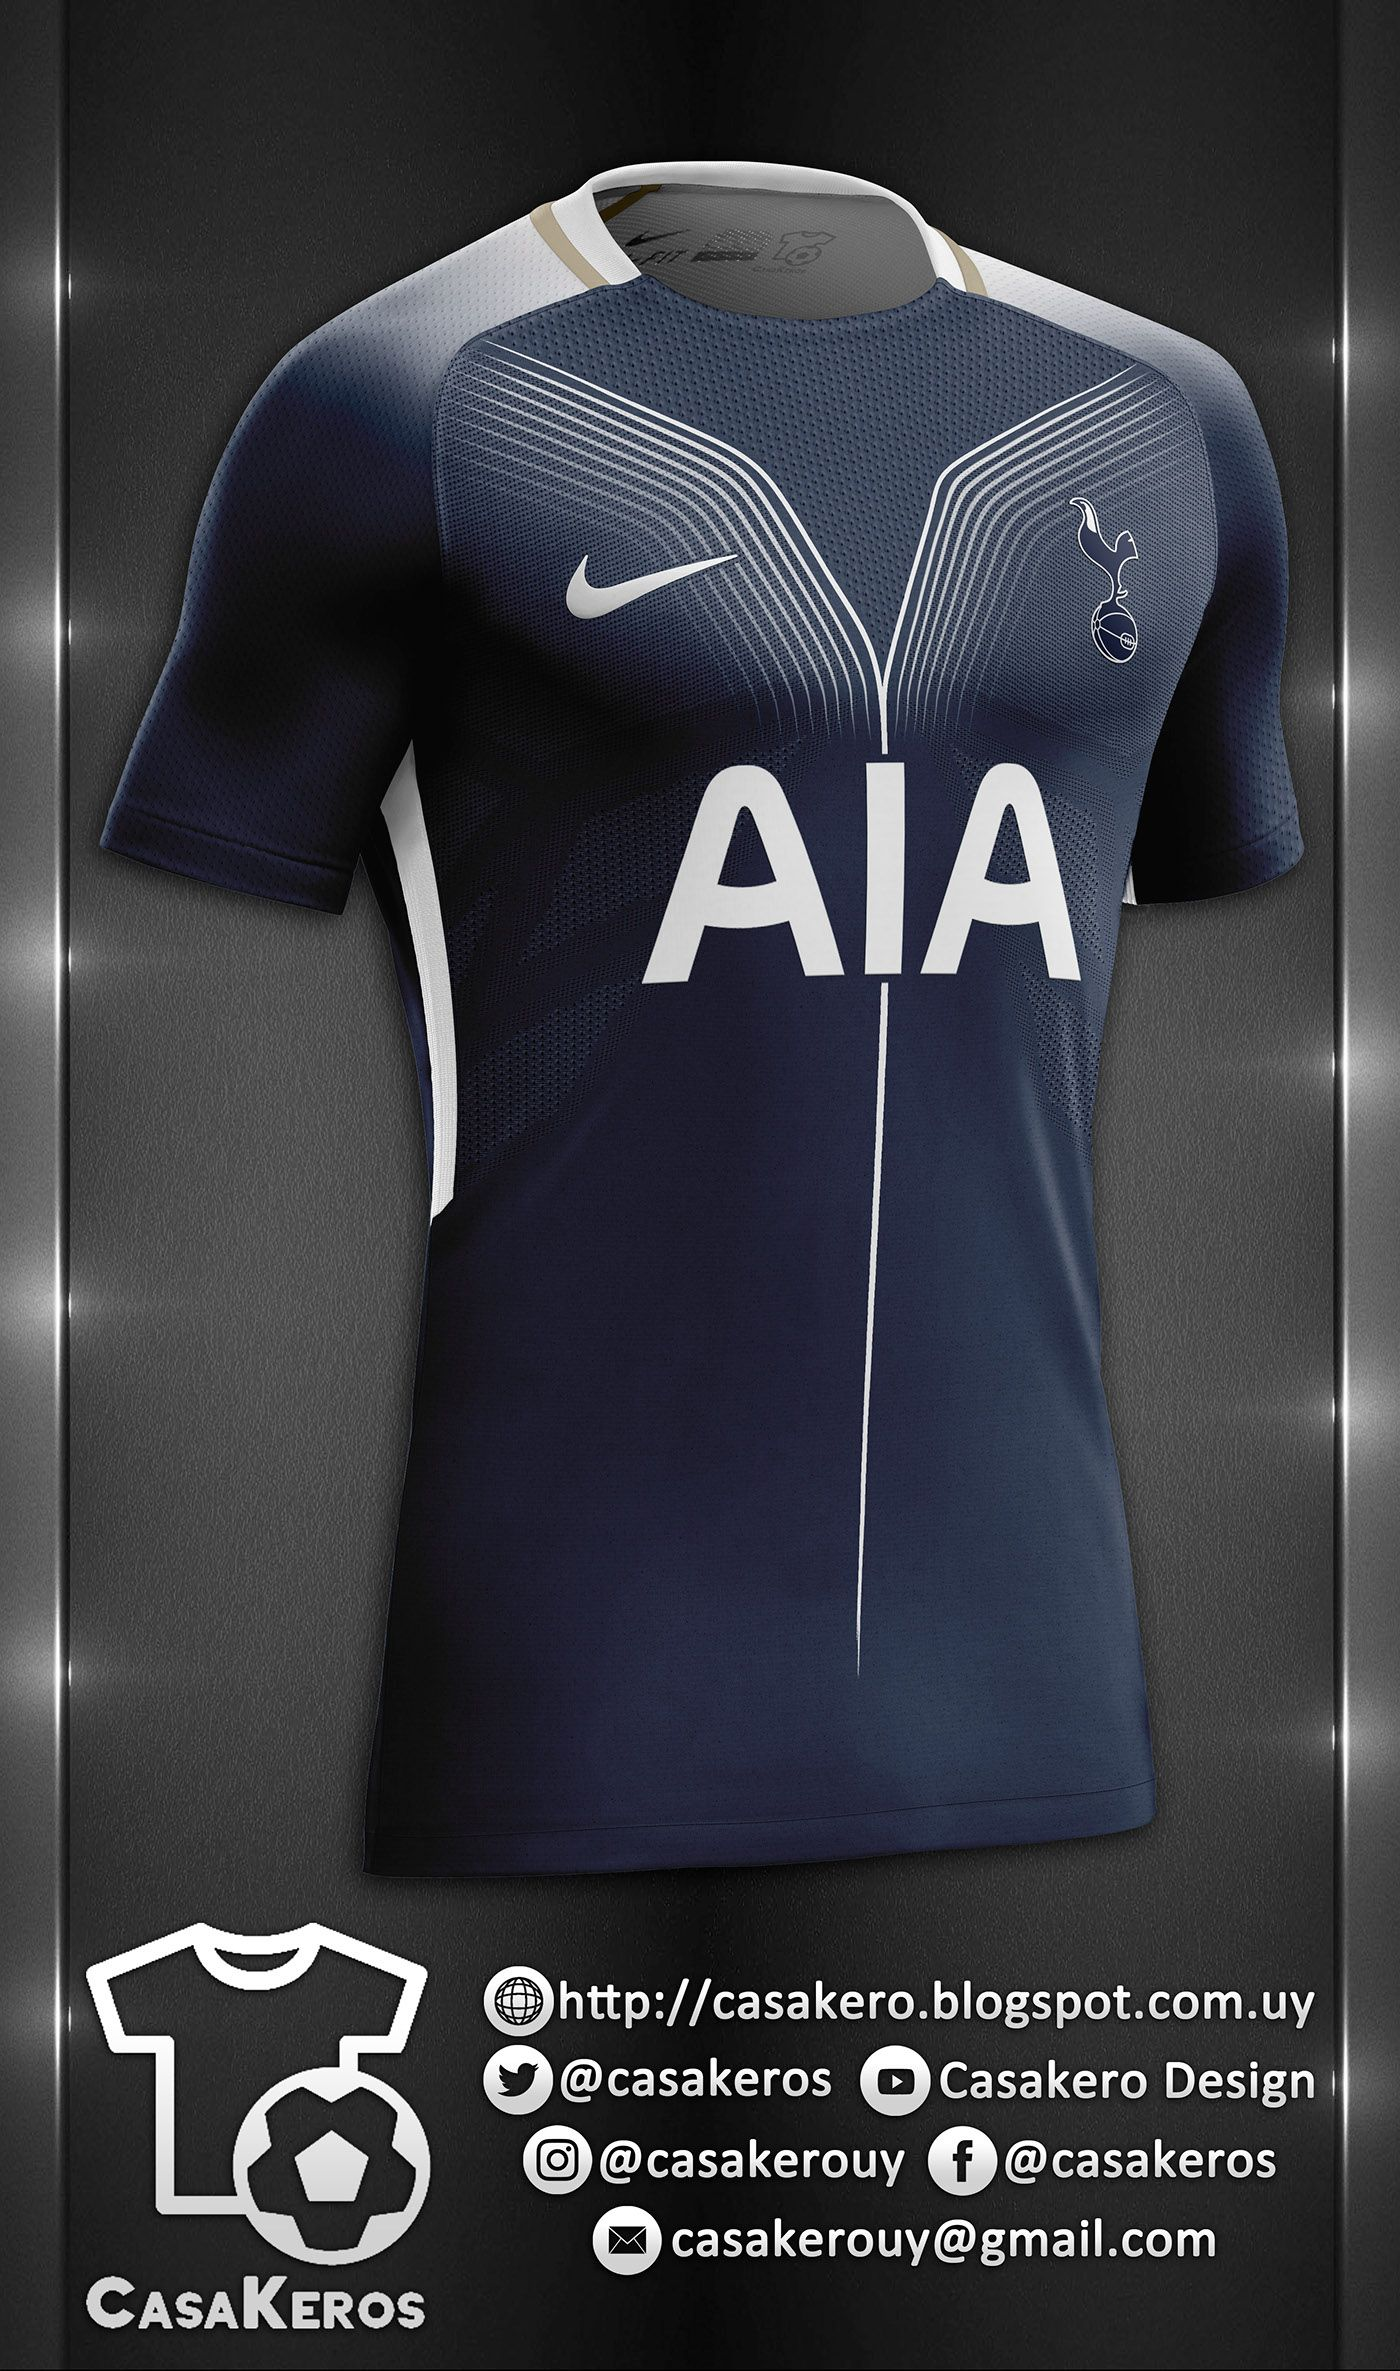 75b7d654358 TOTTENHAM HOTSPU FANTASY KIT    TEMPLATE DOWNLOAD on Behance ...